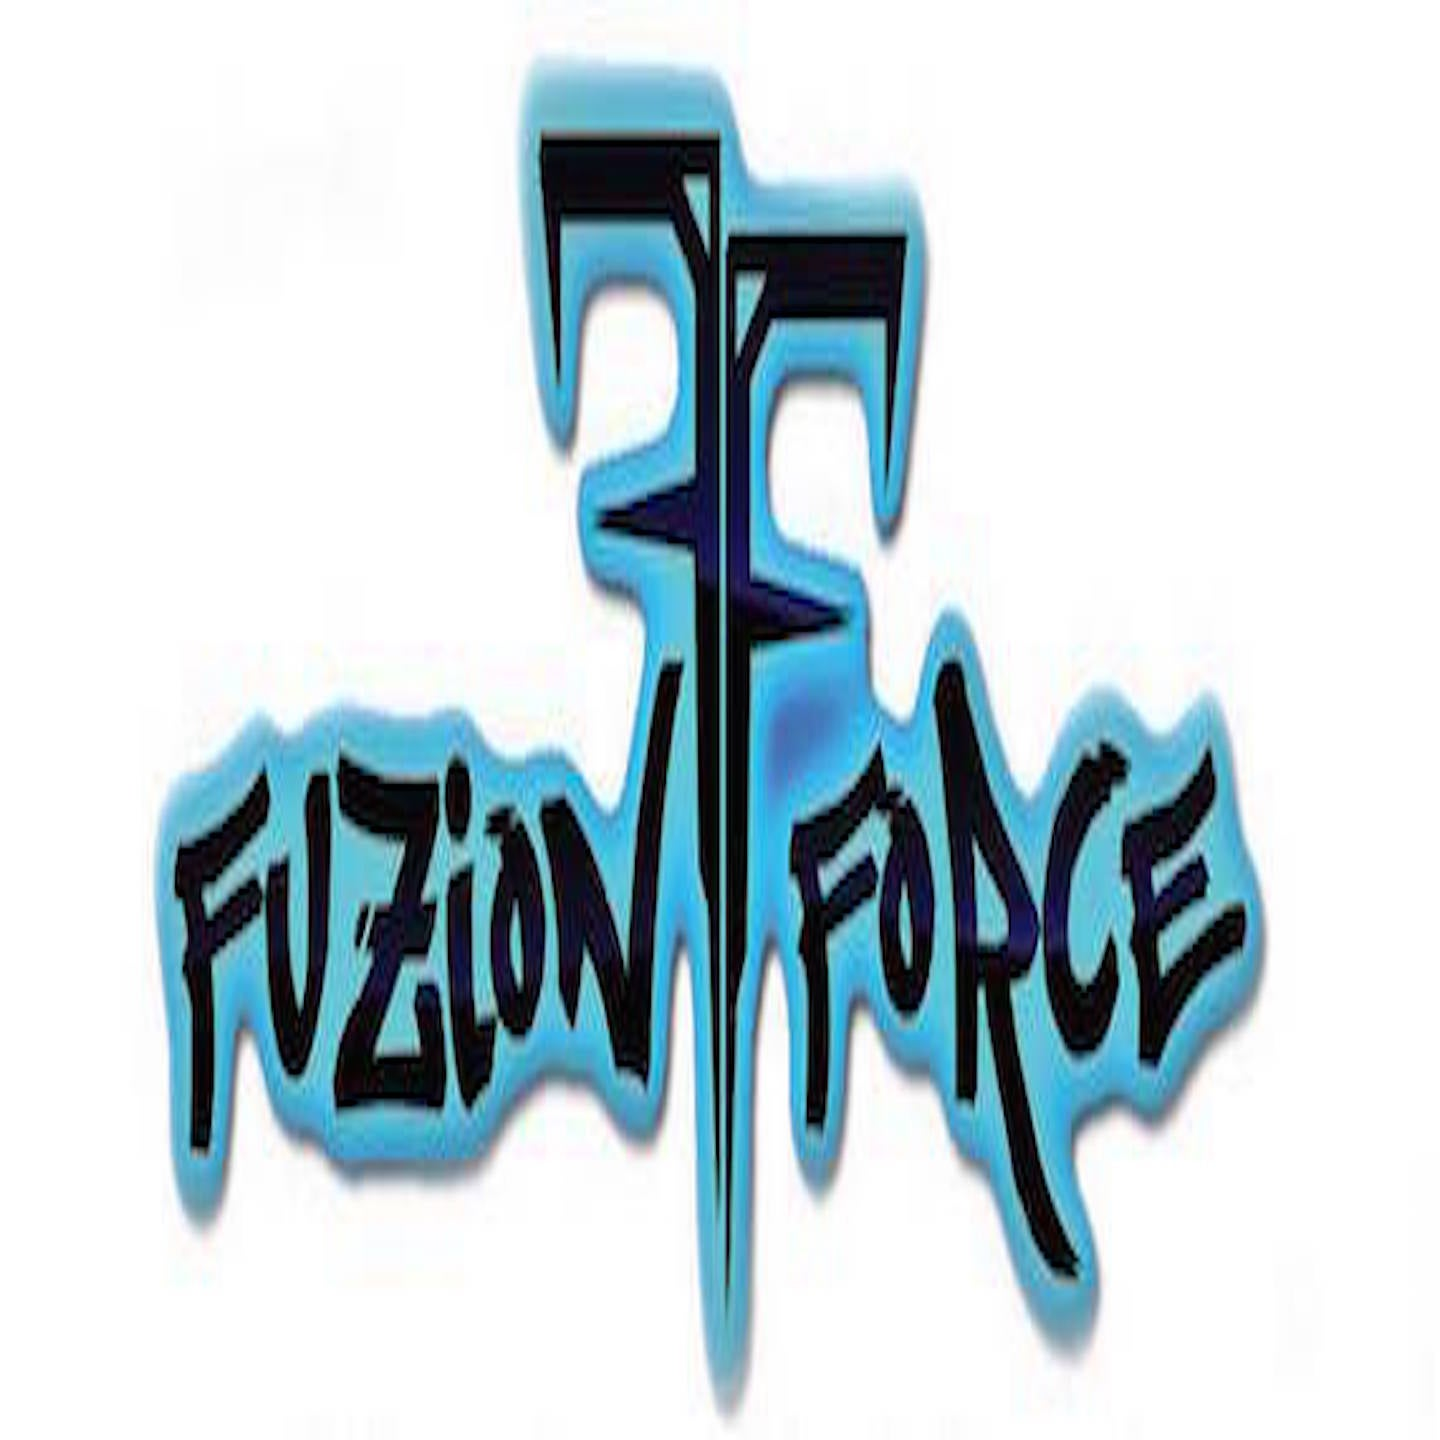 Fuzion Force Awards Show